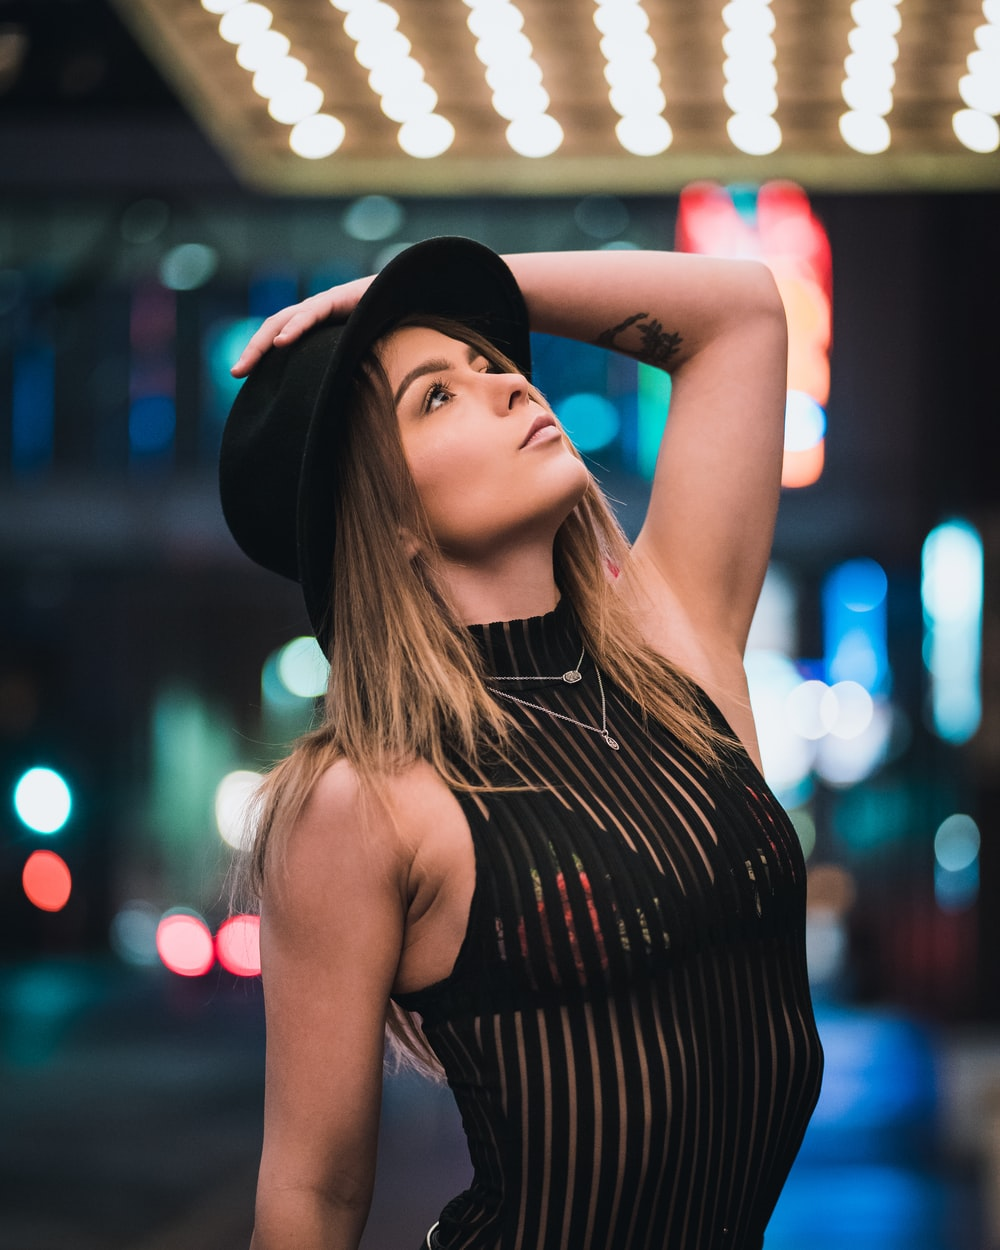 woman in black and white striped tank top wearing black hat